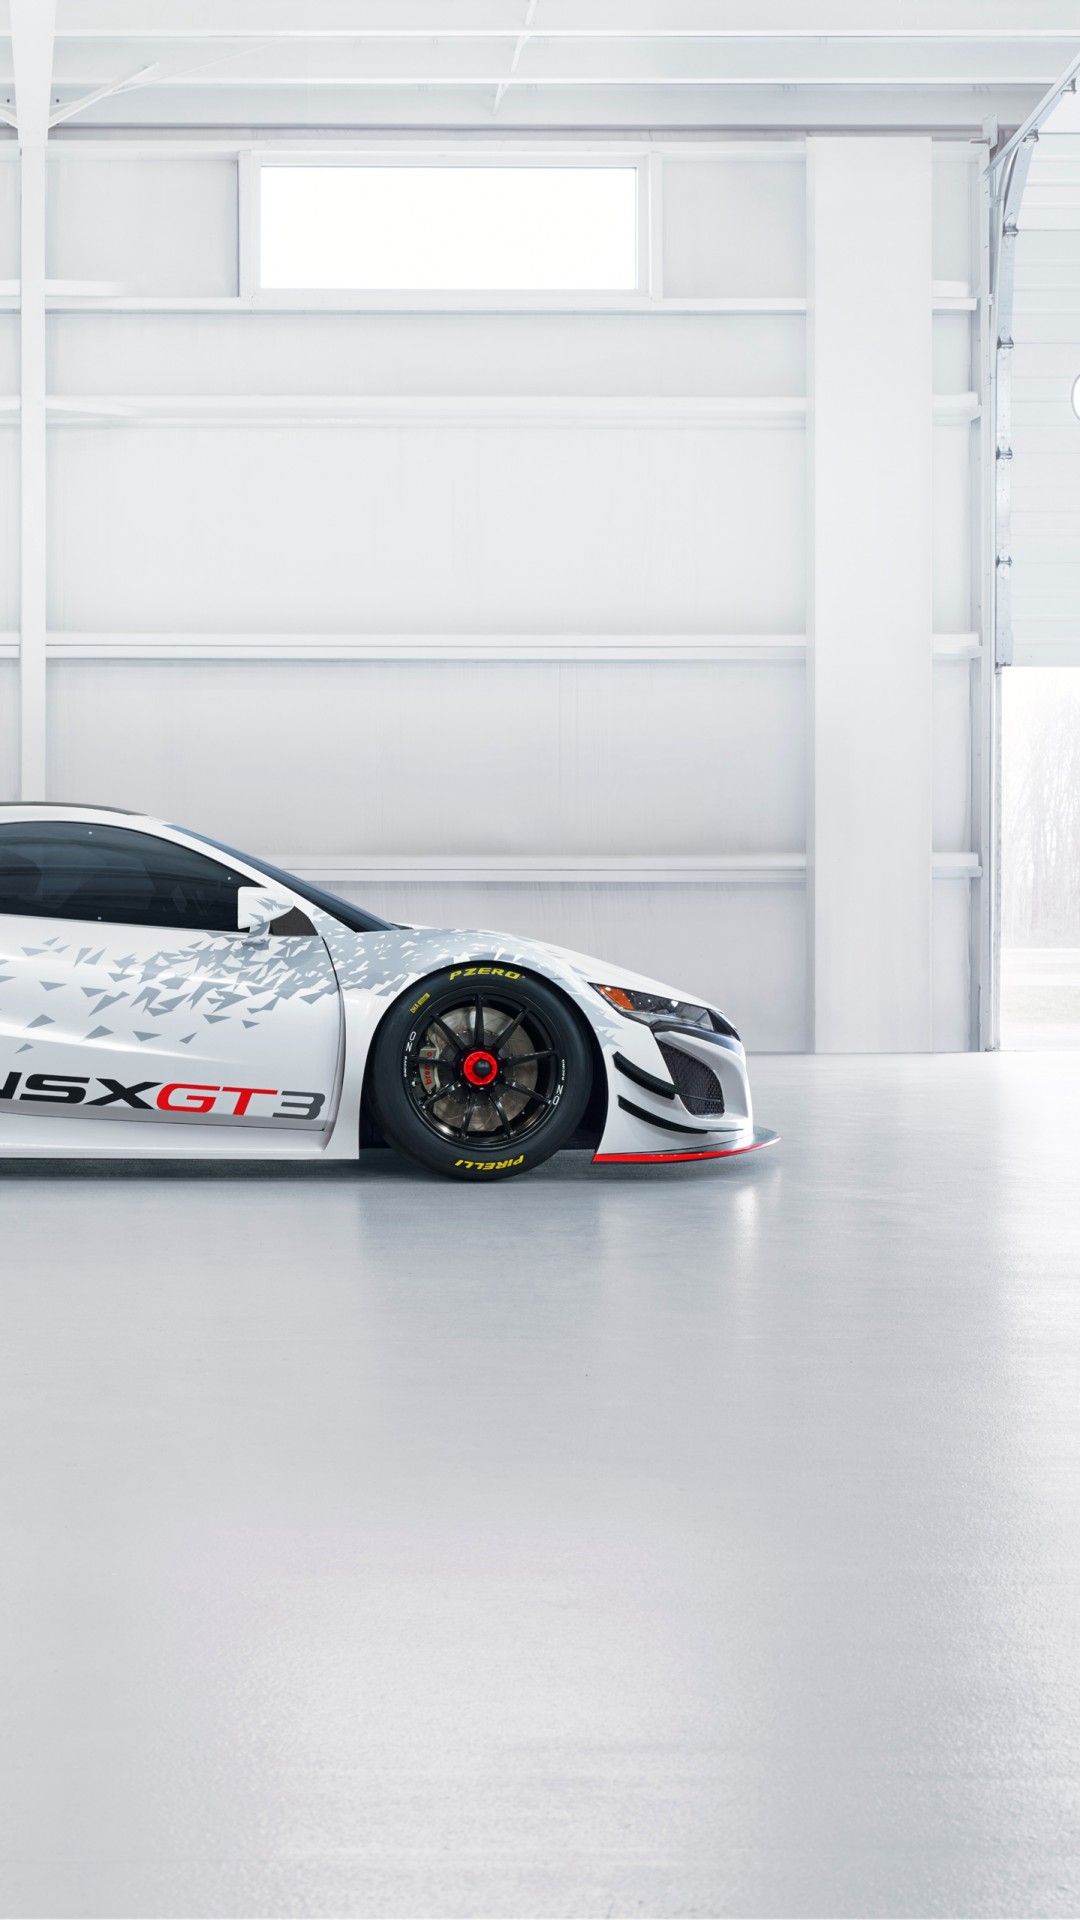 Wallpaper Acura NSX GT 3, NYIAS 2016, Cars & Bikes #10024